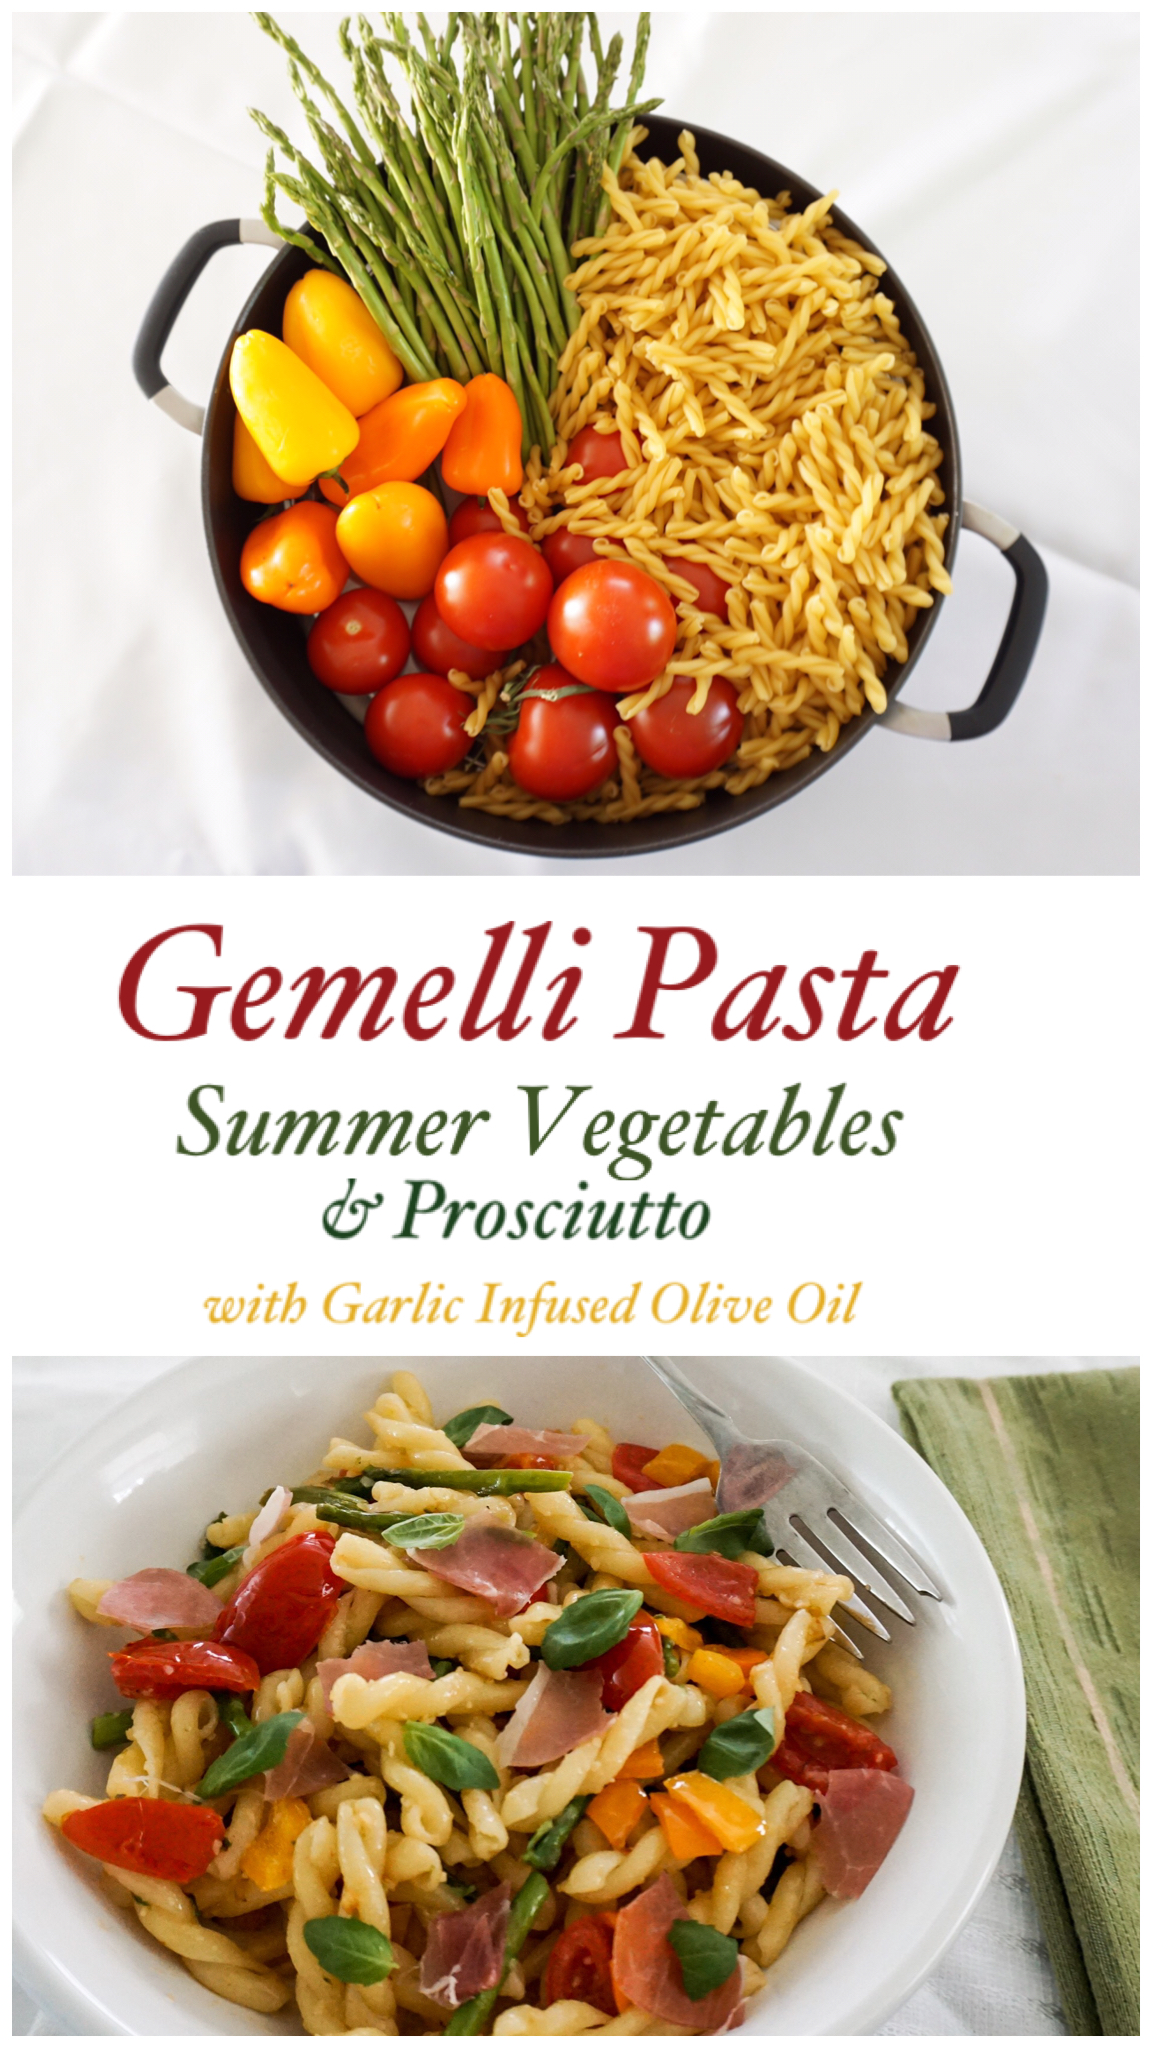 Bright, fresh vegetables and prosciutto in mouth-watering garlic oil. Easy summer dinner recipe! Yum 👅